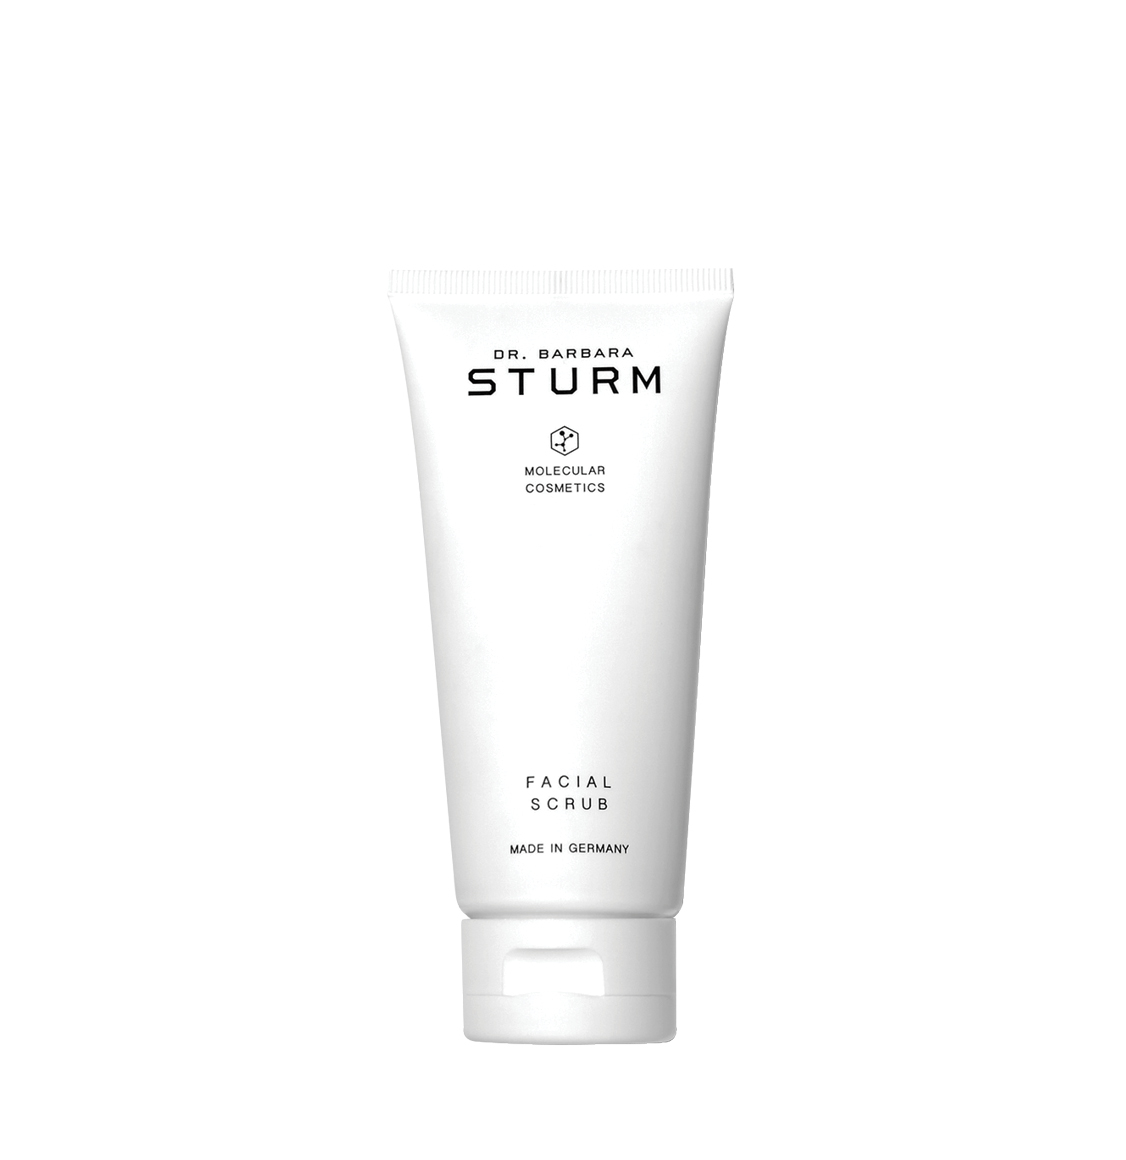 Dr. Barbara Sturm Facial Scrub 100ml